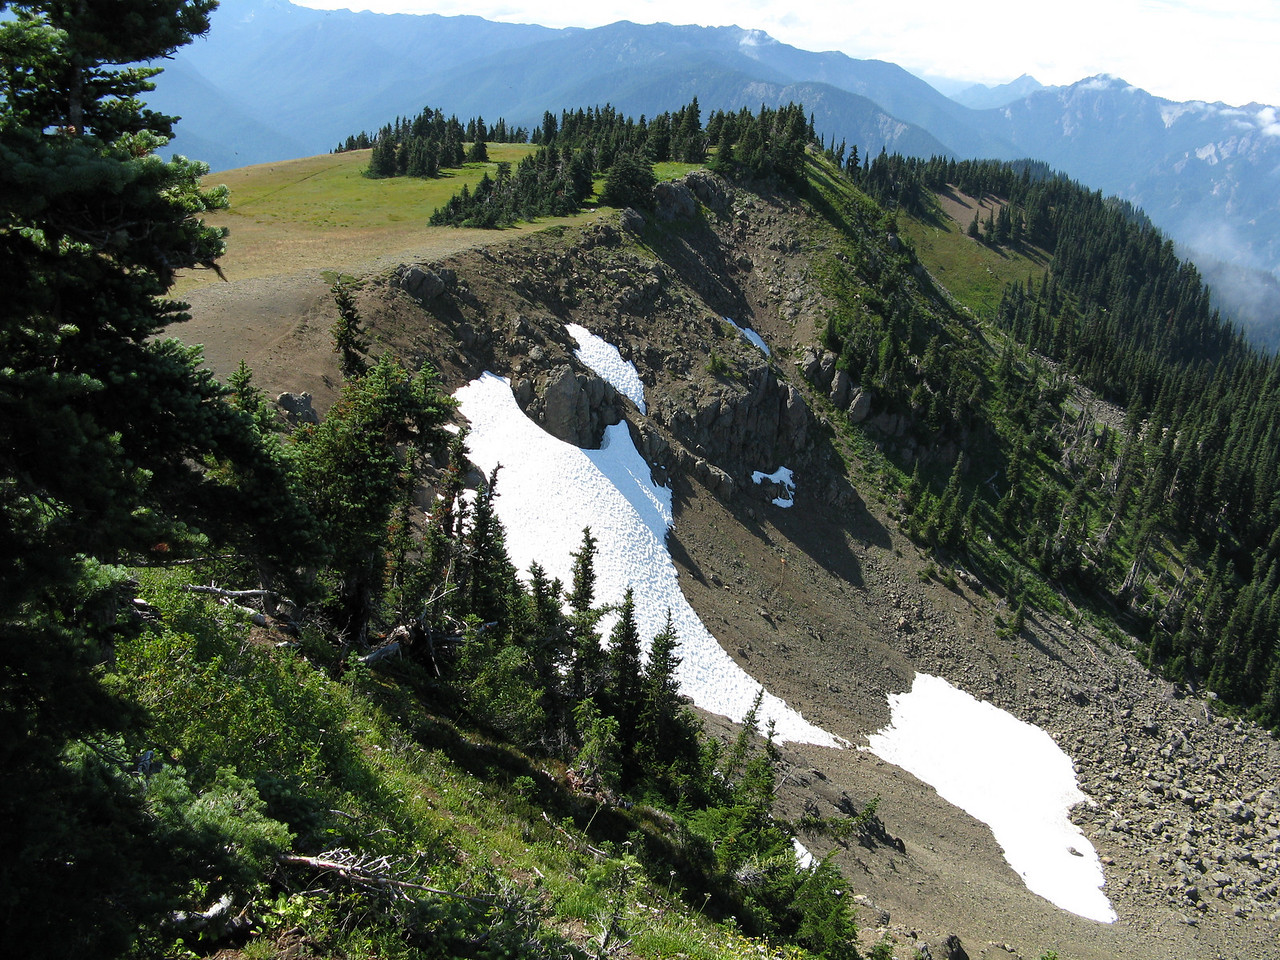 The north-facing slope still has snow fields.